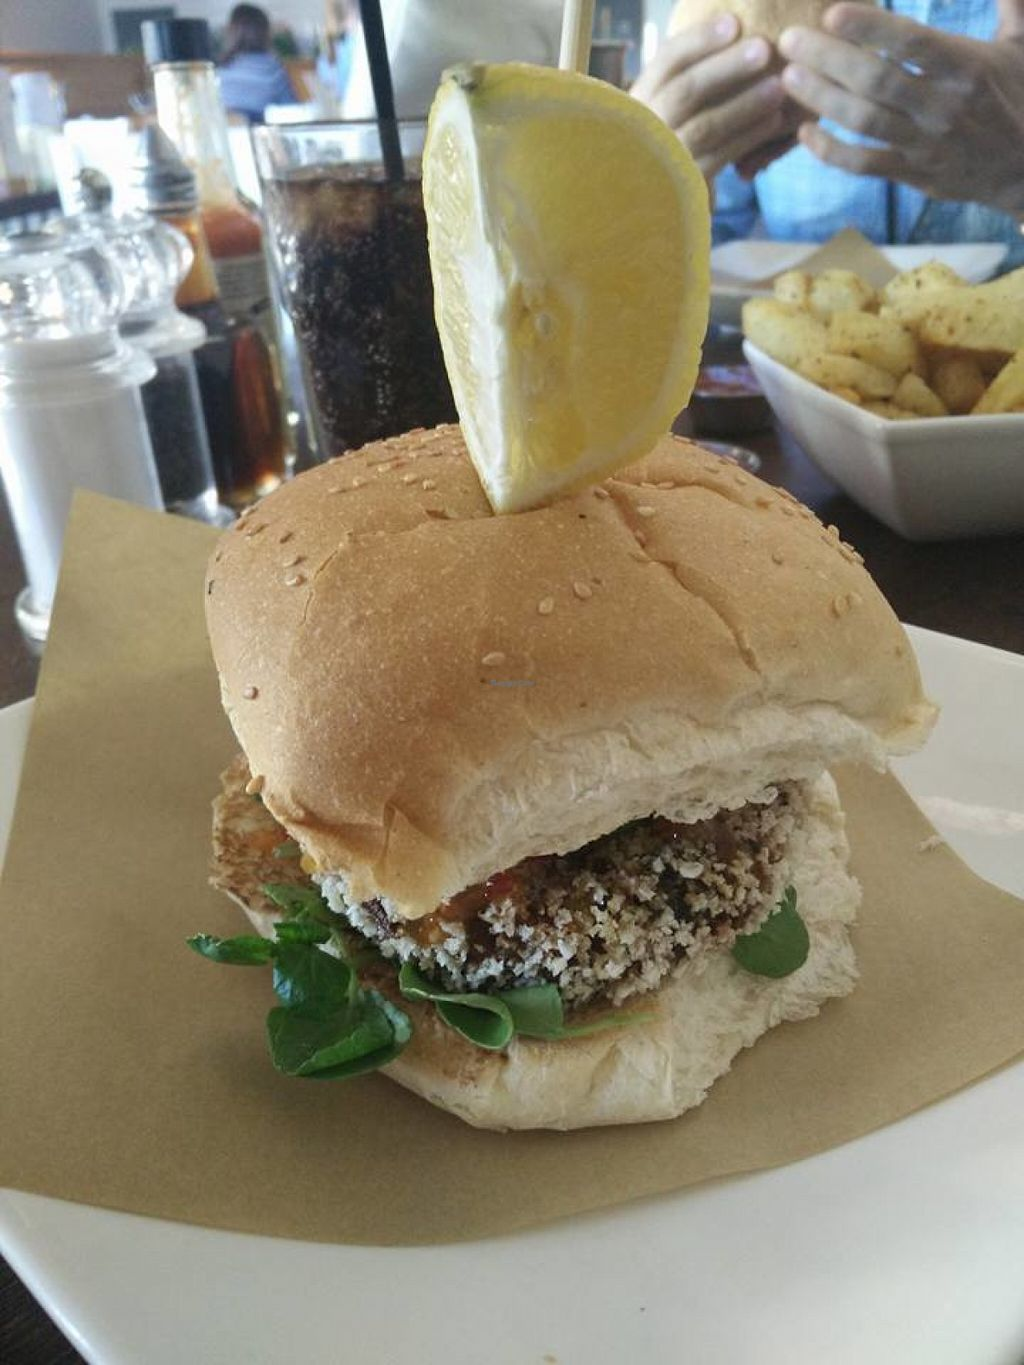 """Photo of CLOSED: Handmade Burger Company - Valley Centertainment  by <a href=""""/members/profile/Meaks"""">Meaks</a> <br/>Thai Vegan Burger <br/> July 30, 2016  - <a href='/contact/abuse/image/77646/163530'>Report</a>"""